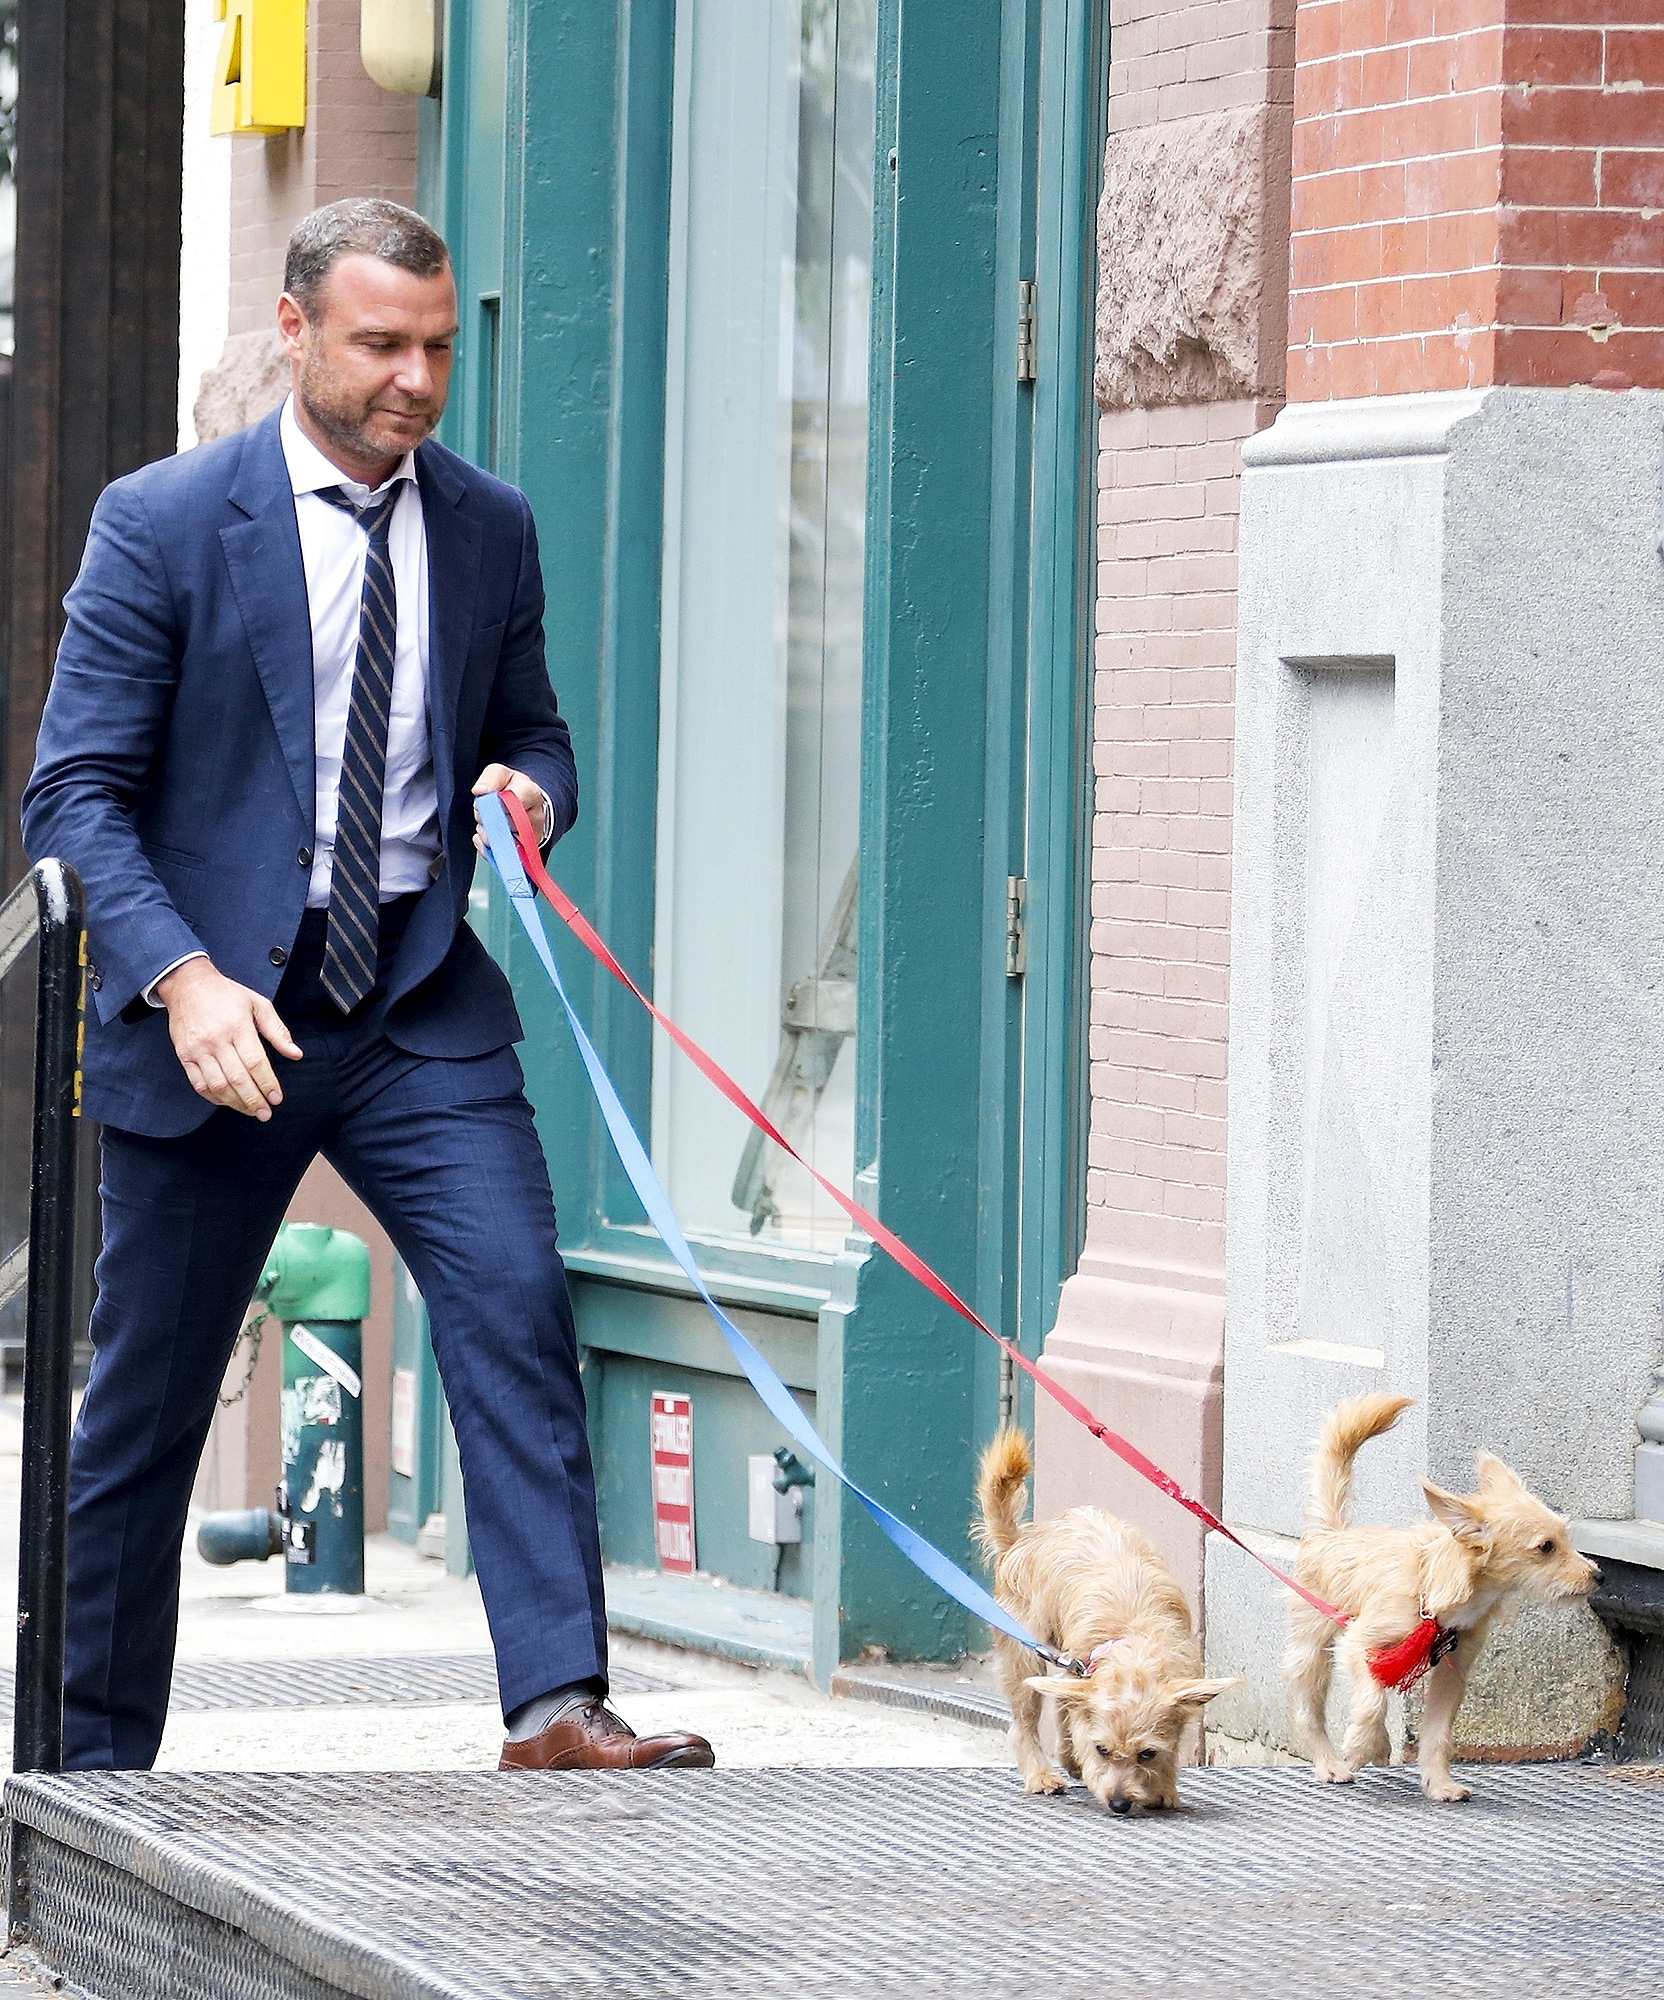 *EXCLUSIVE* Liev Schreiber gets tangled up in Blue!